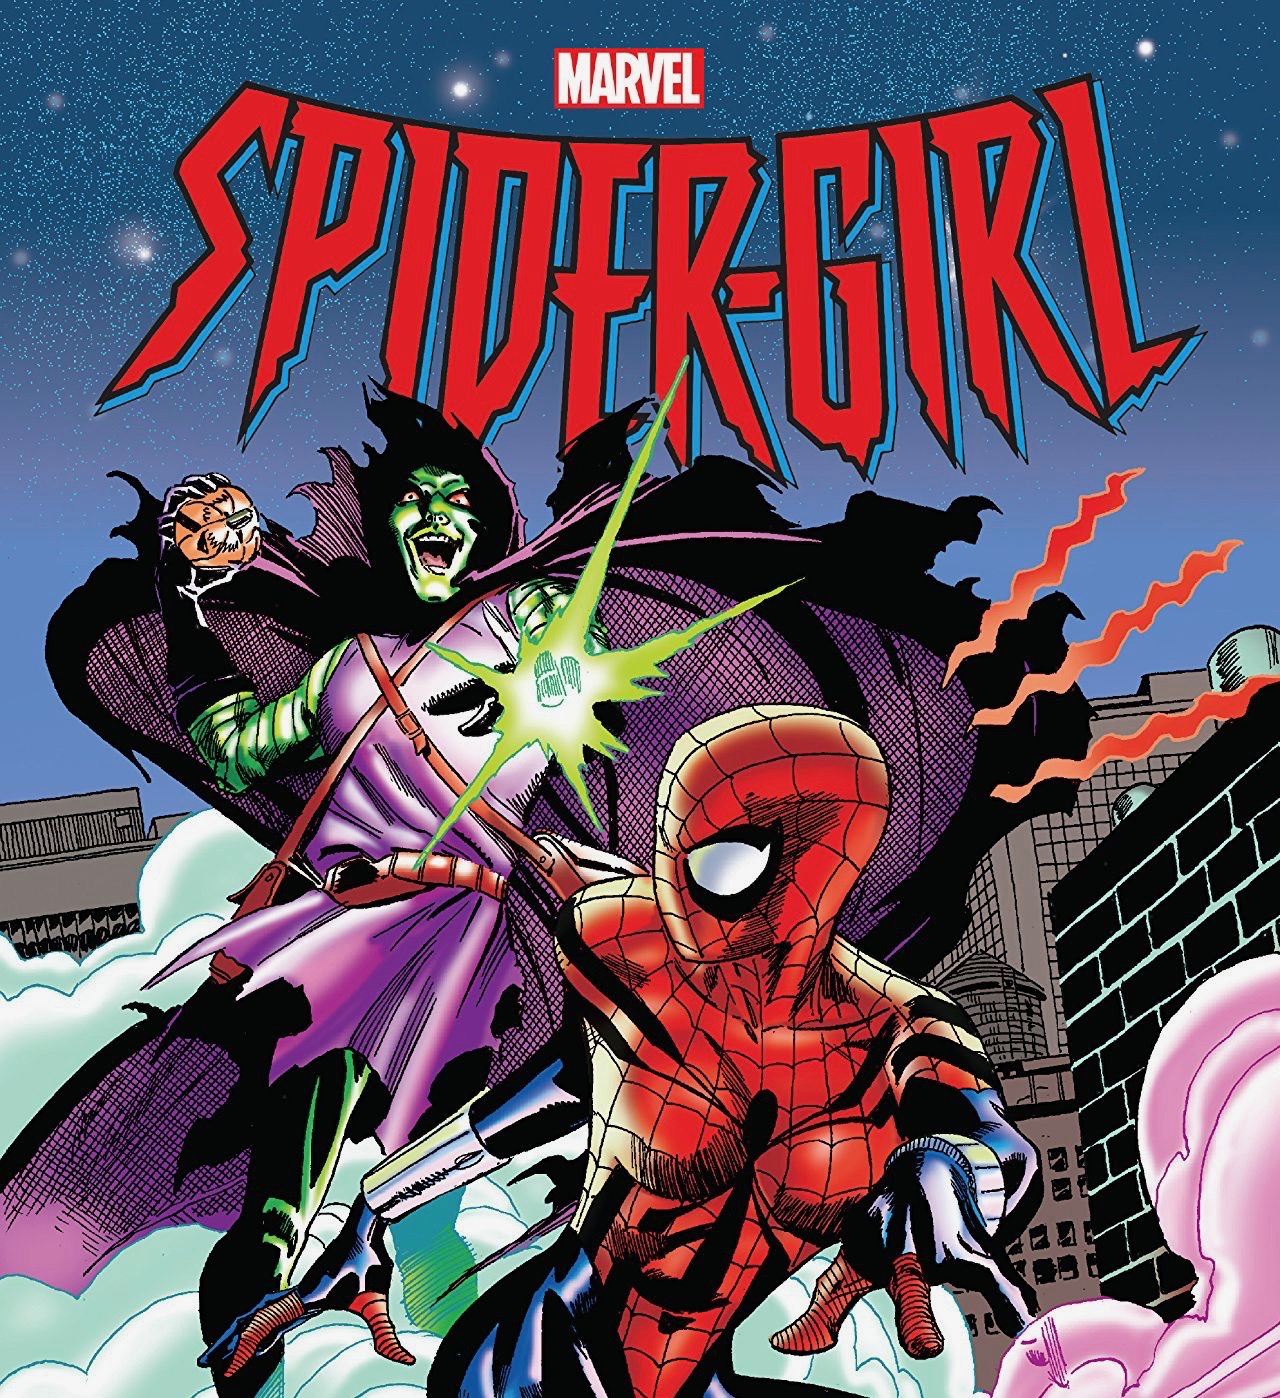 Spider-Girl: The Complete Collection Vol. 2 review: What modern Marvel should emulate